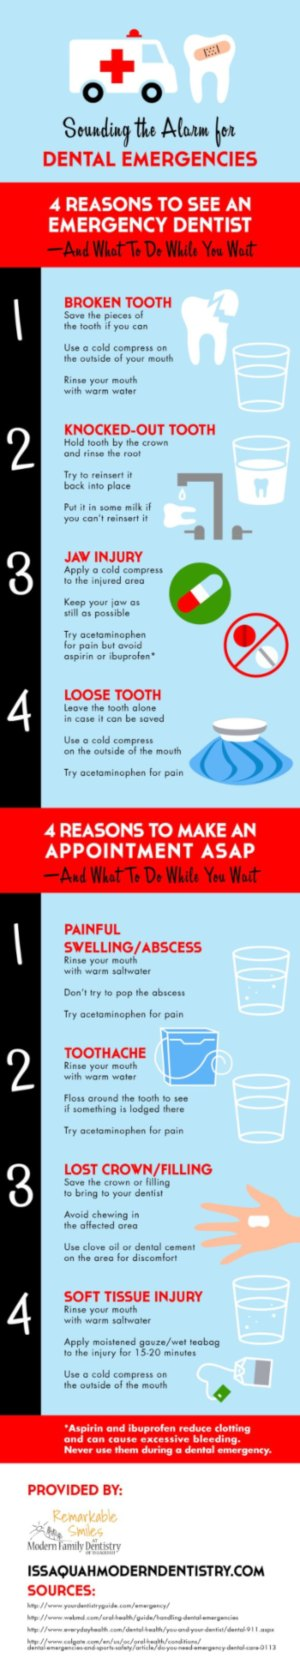 Emergency Dentist Infographic